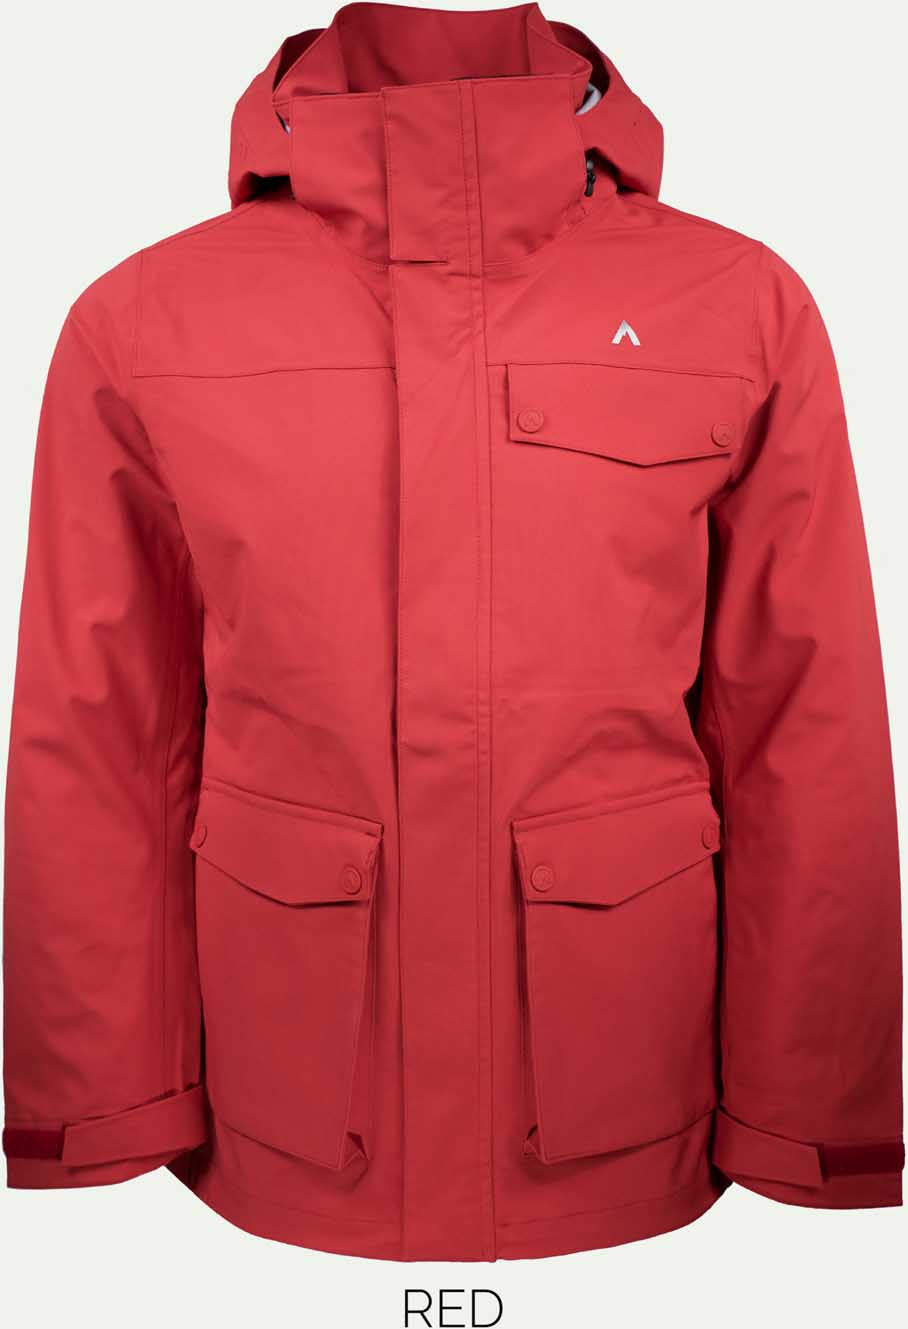 image terracea-peak-ltd-jacket-red-jpg